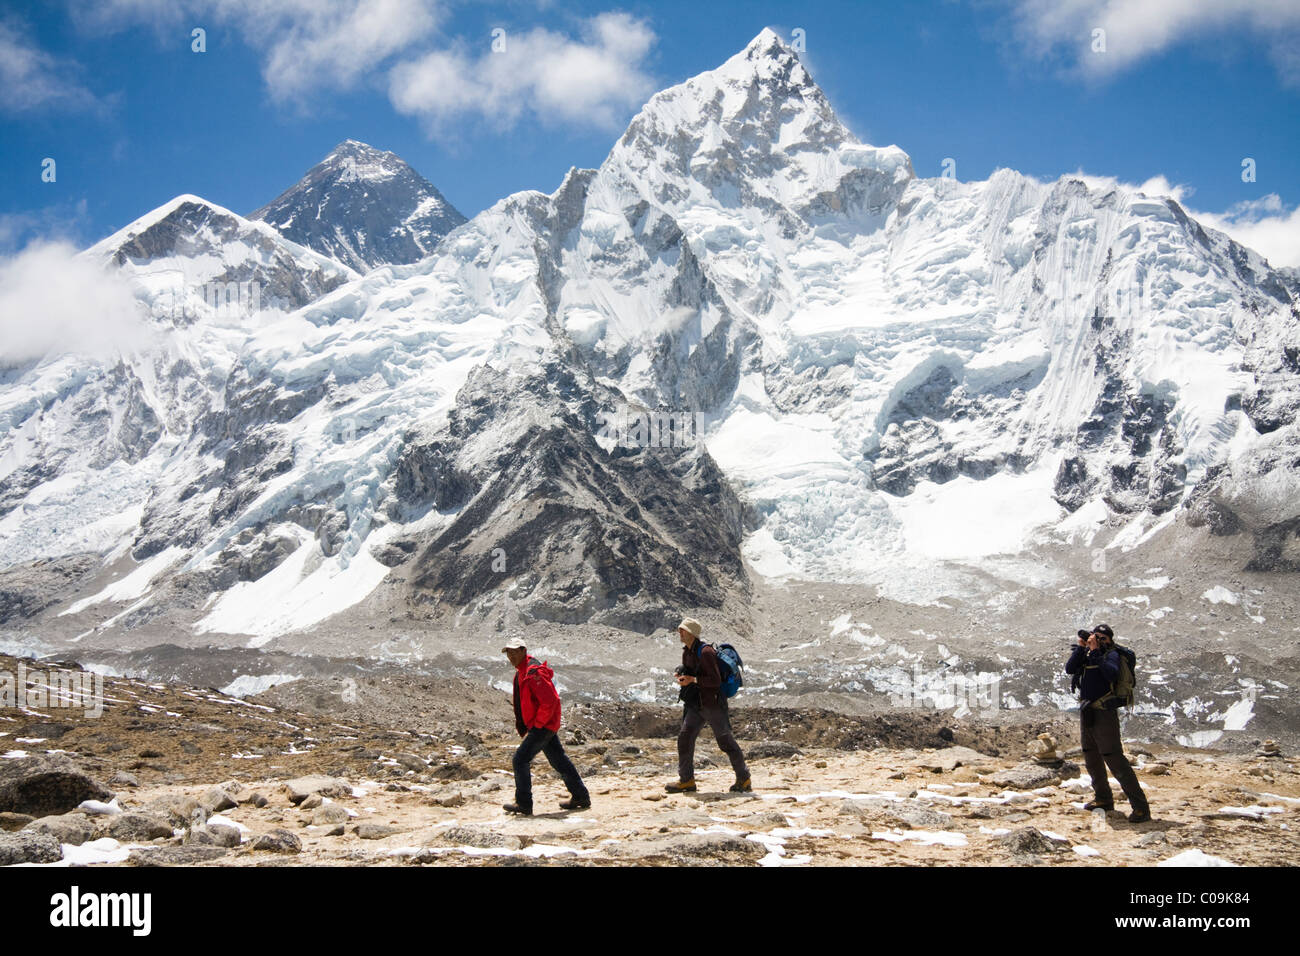 Trekkers with Mount Everest and Nuptse from Kala Patthar, Khumbu region, Himalaya Mountains, Nepal. - Stock Image